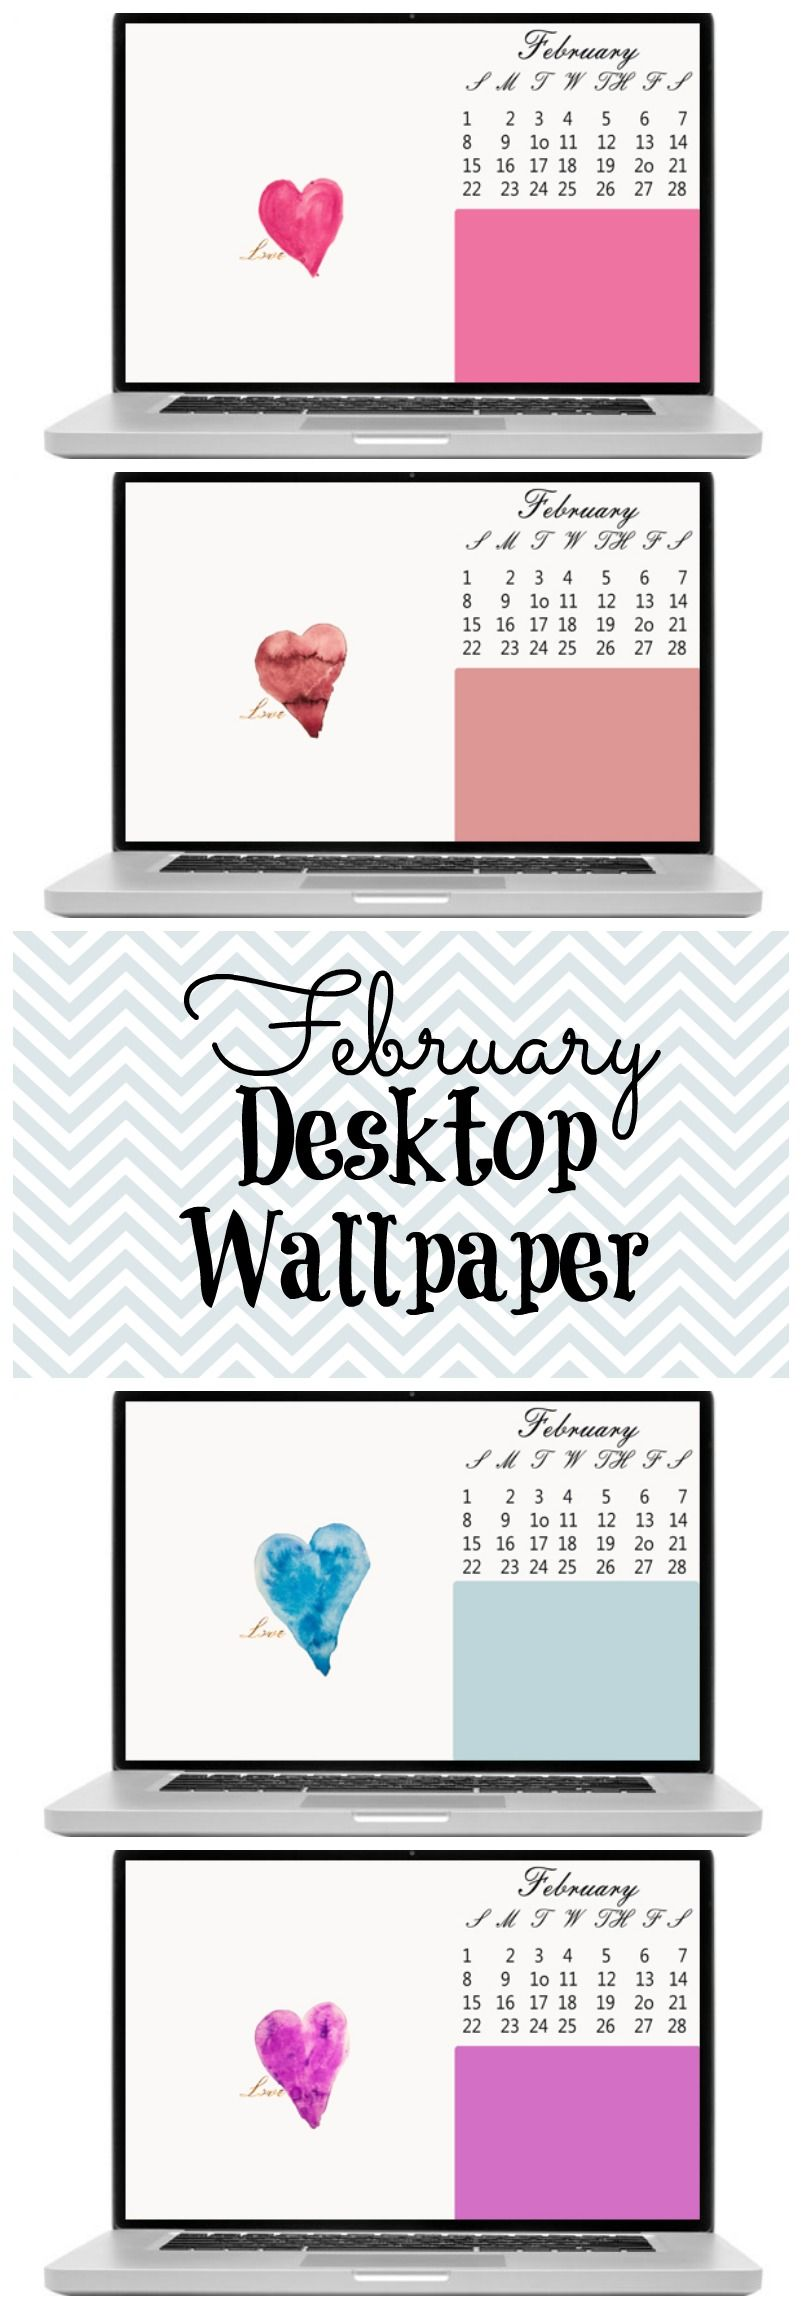 Four new free Desktop Wallpapers for February 2015.  Help yourself stay organized with this water color heart wallpaper.